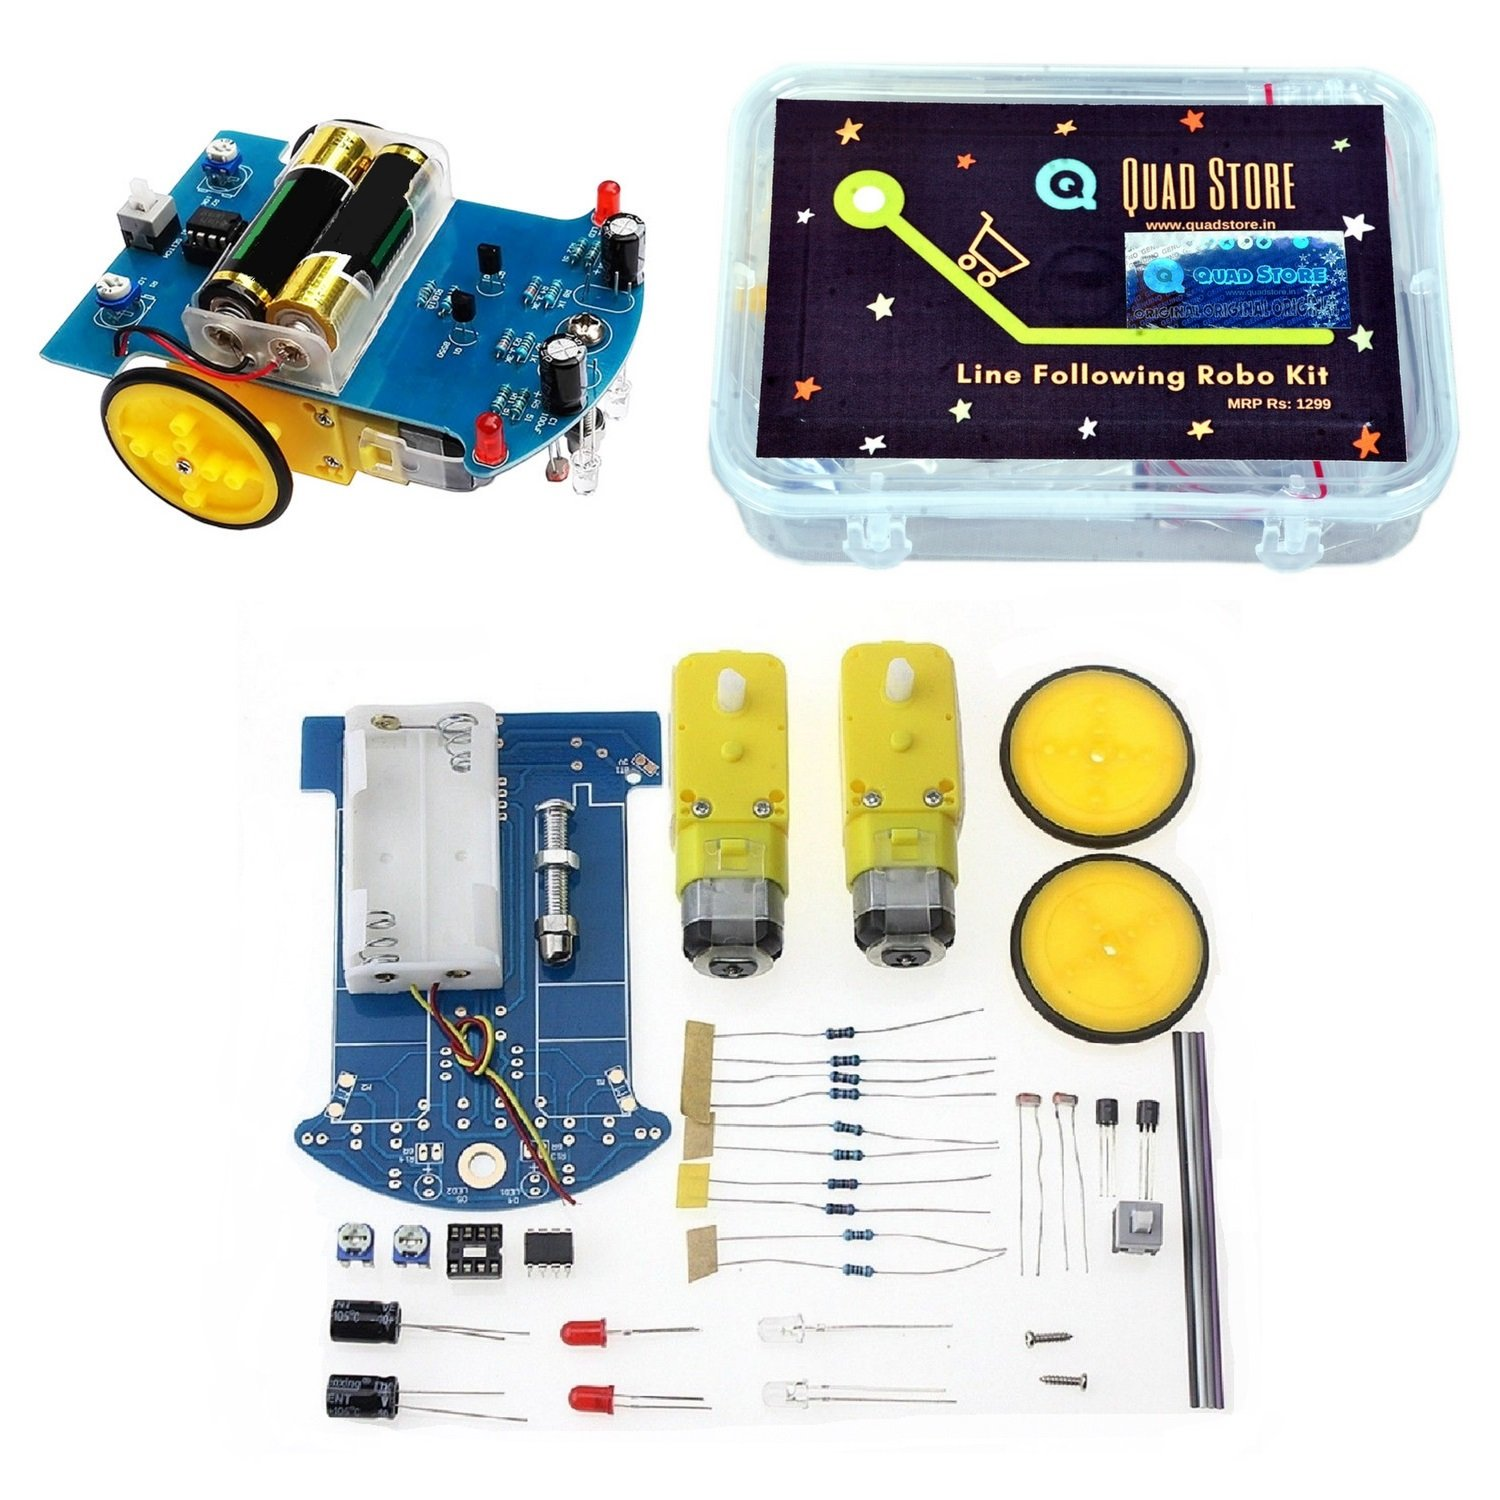 Quad Storetm Line Follower Tracking Robot Car Kit 2 Transistor Industrial Scientific